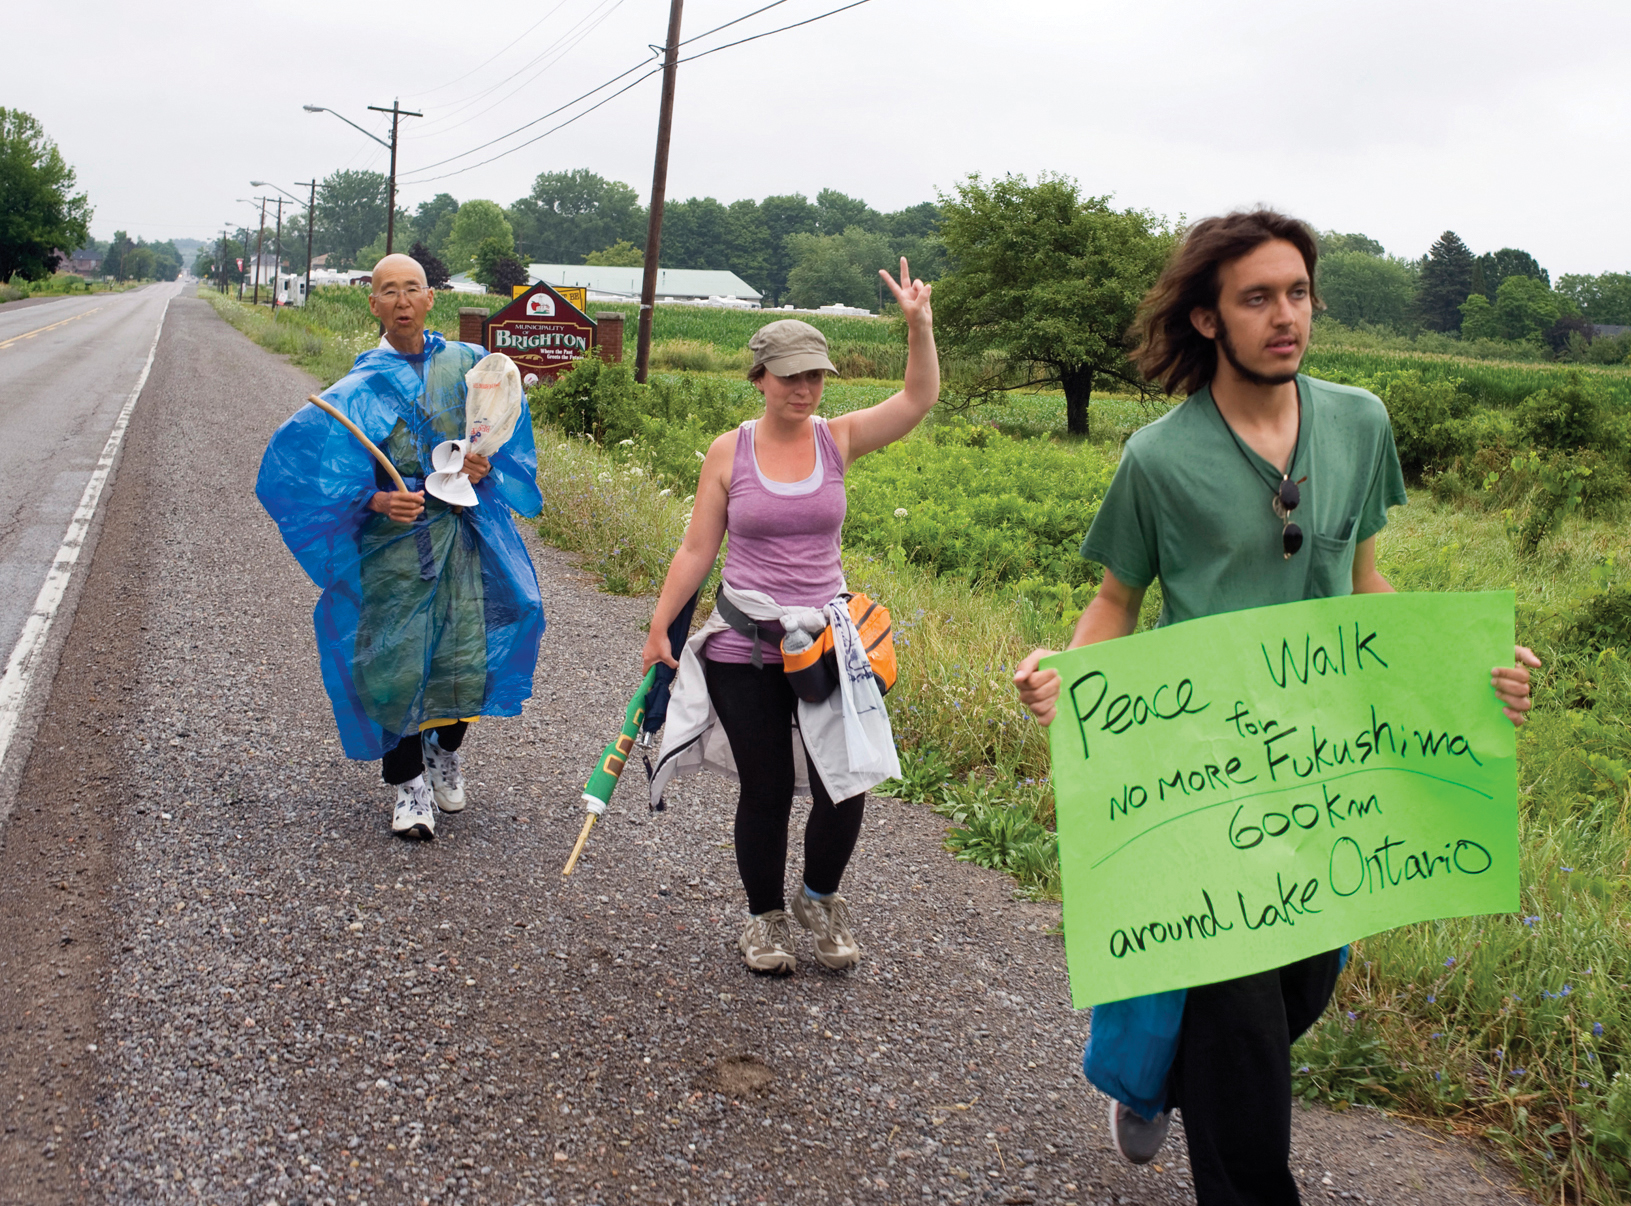 BRIGHTON --  Buddhist nun Jun Yasuda, left, Lauren Carlbon and Alex Ciccolo on their recent peace walk through Brighton. Ms. Yasuda and her fellow walkers are traveling 600 km around Lake Ontario to spread awareness about the dangers of nuclear energy and weapons. July 26, 2012.